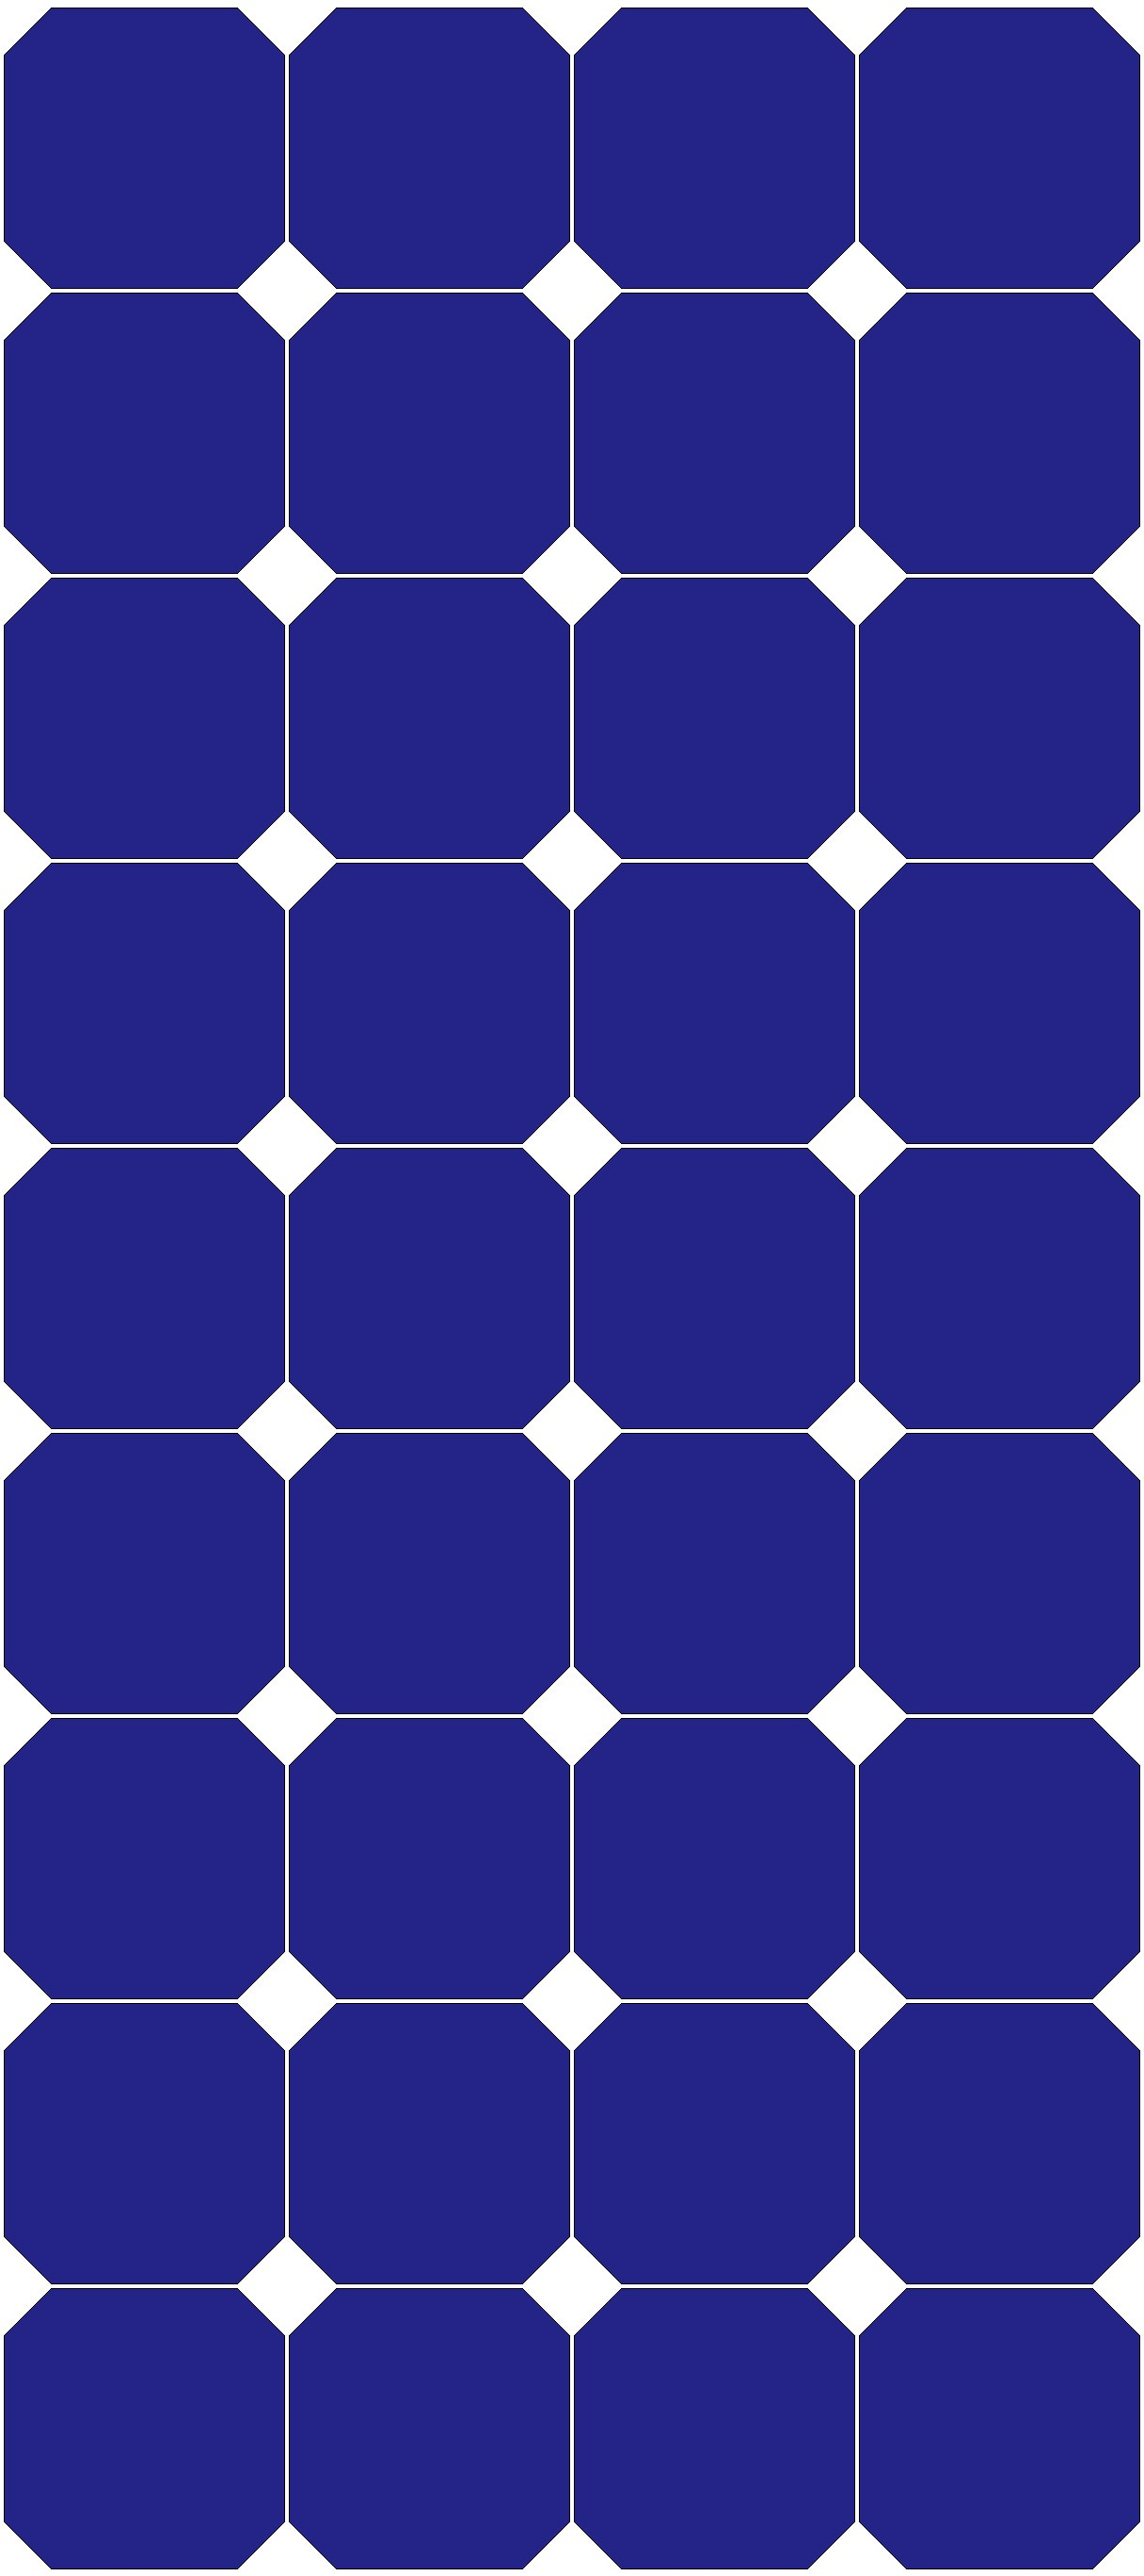 Solar panel clipart solar power. File jpg wikimedia commons